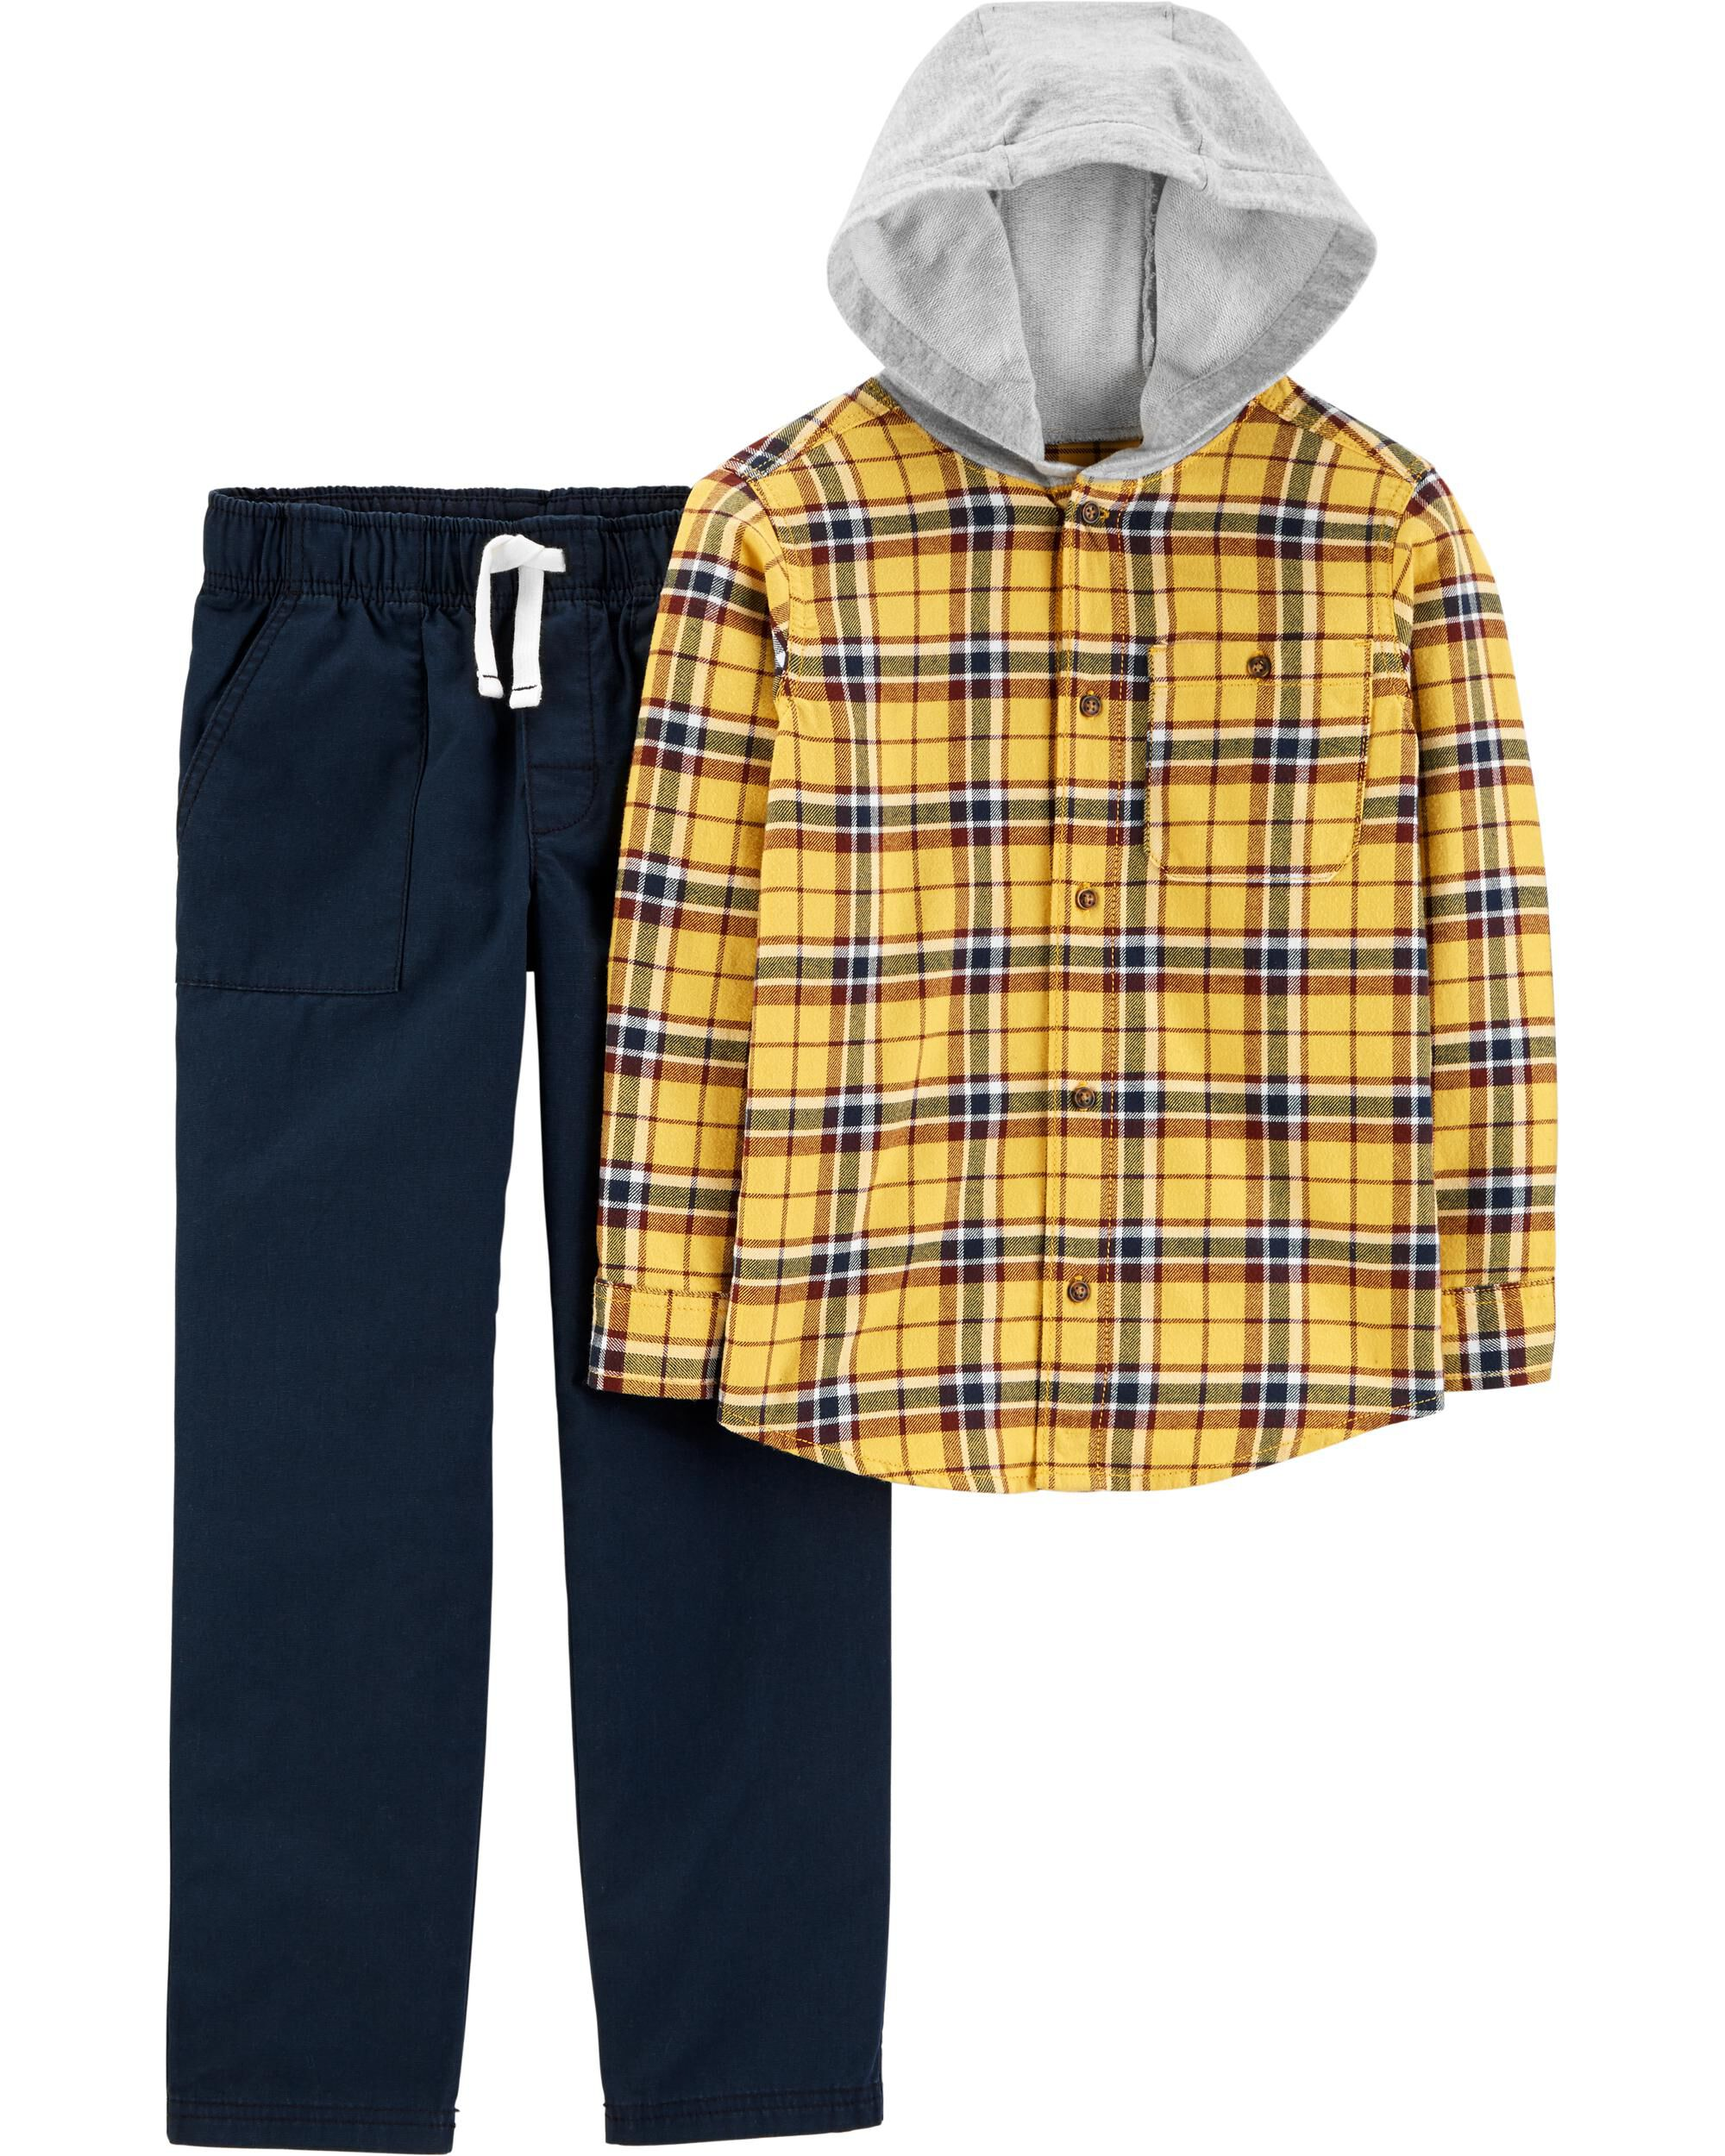 *CLEARANCE* 2-Piece Button-Front Flannel Hooded Top & Canvas Pant Set